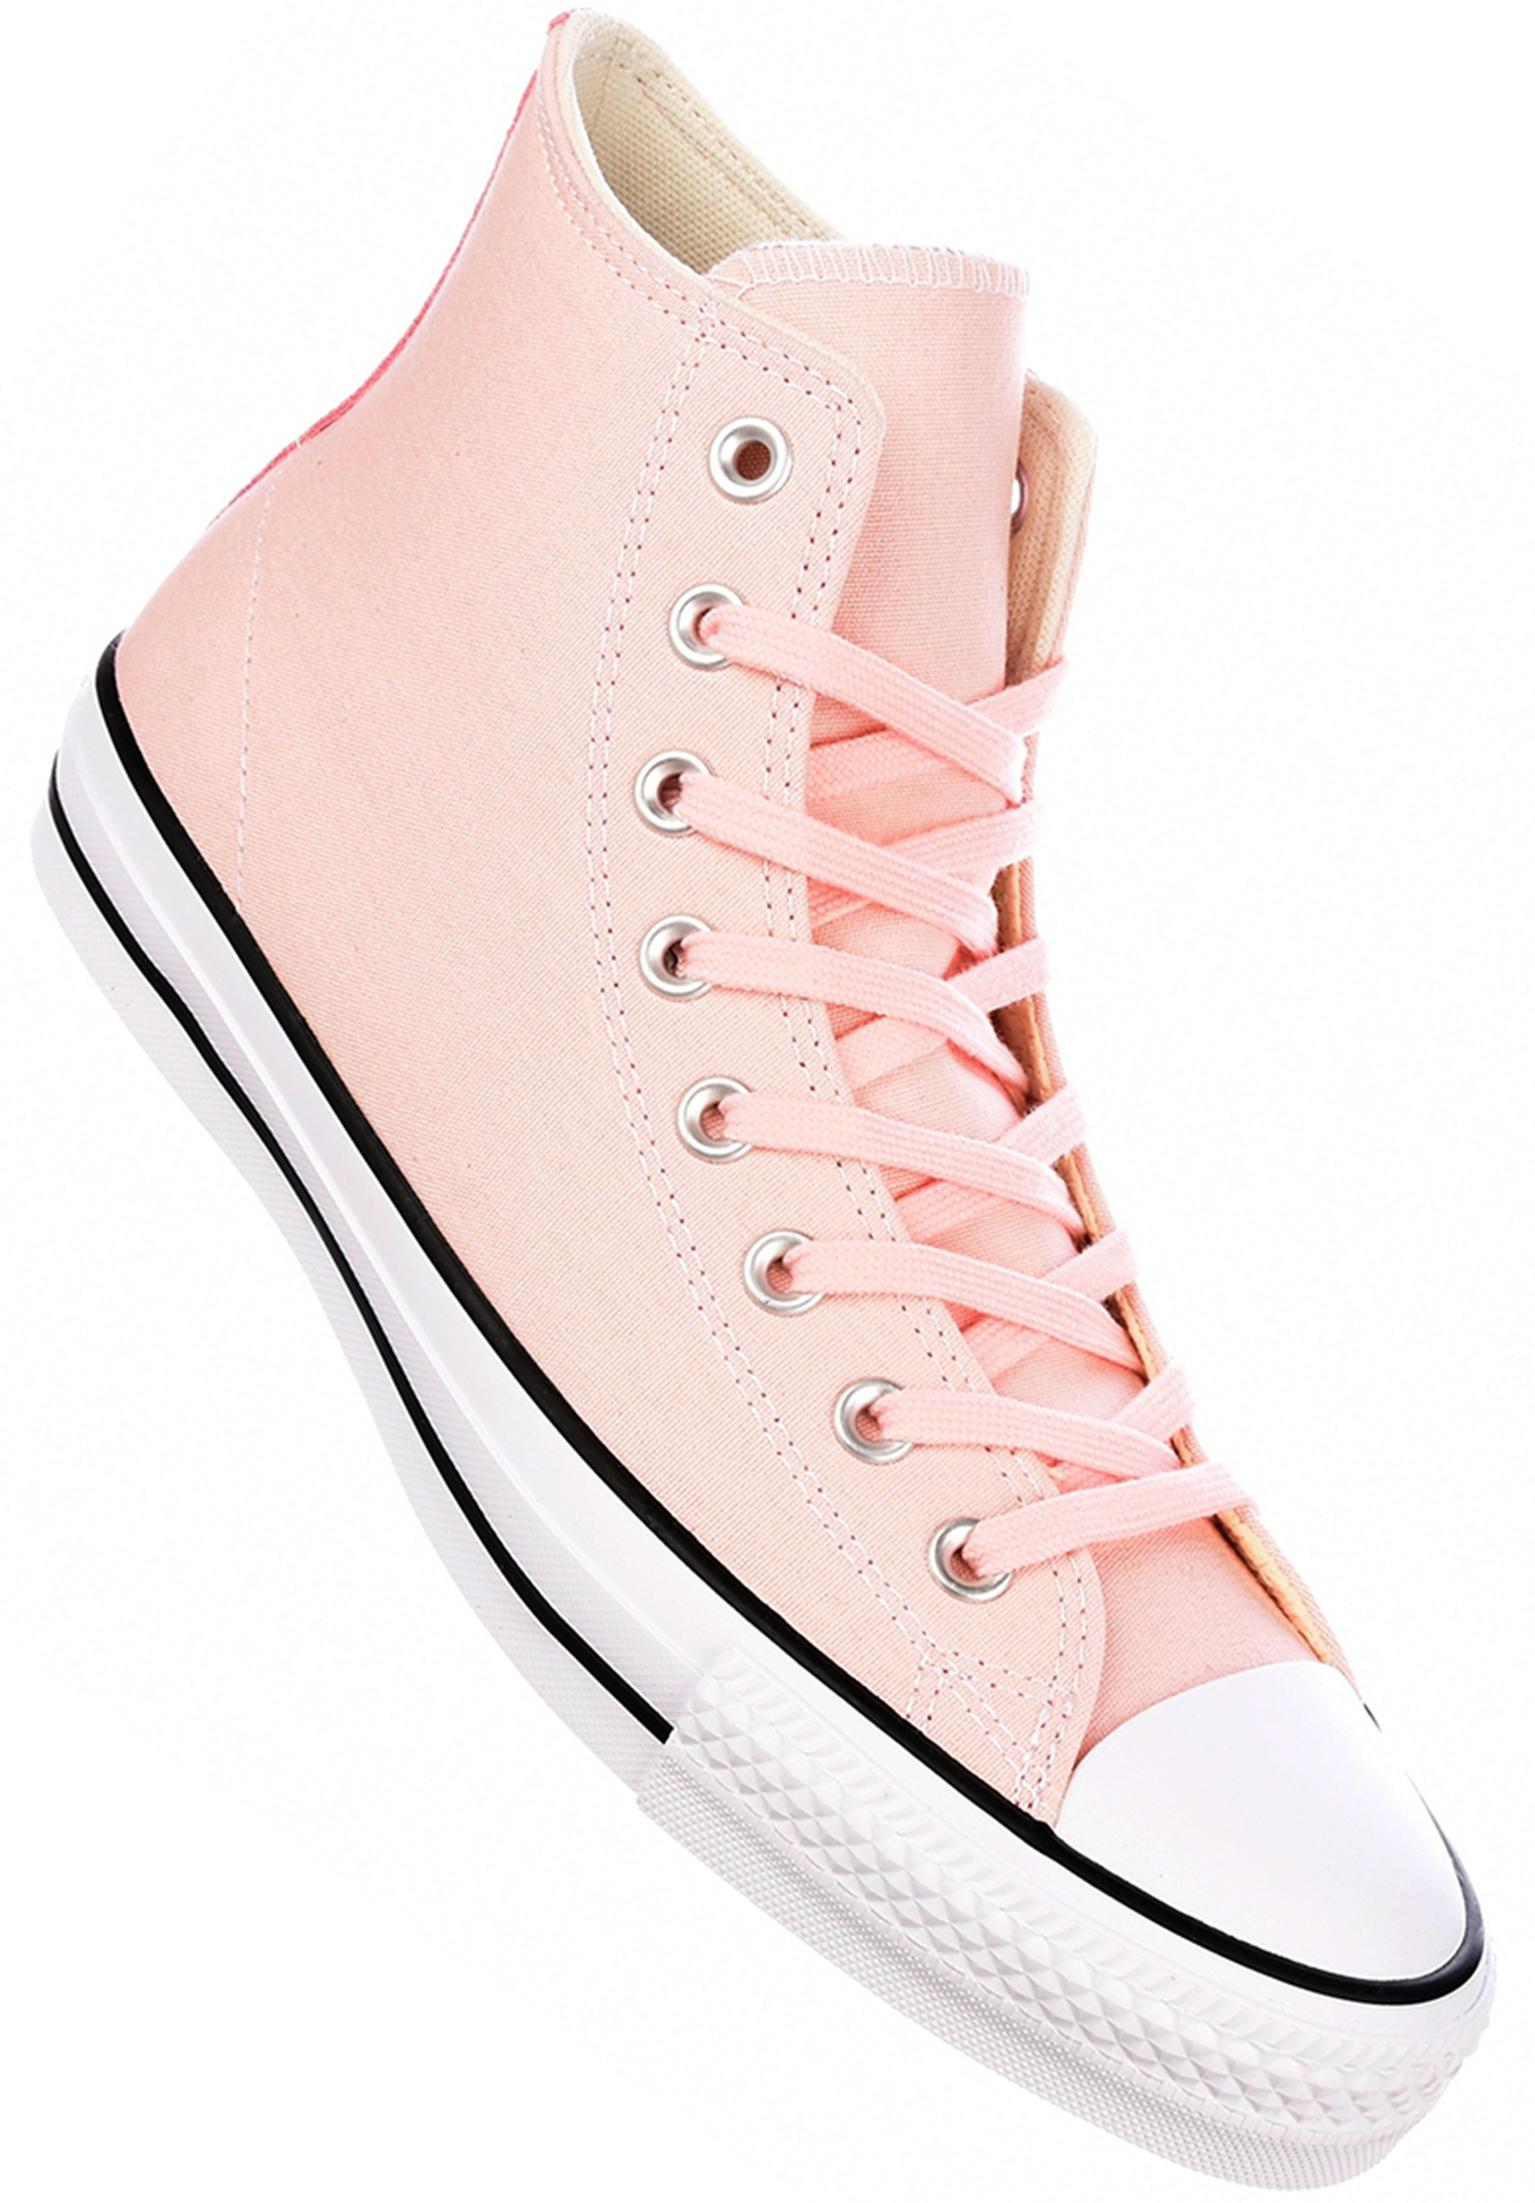 72d96e7a417 ... cheap for discount f0d1a b339e CTAS Pro Hi Converse CONS All Shoes in  vaporpink-pink ...